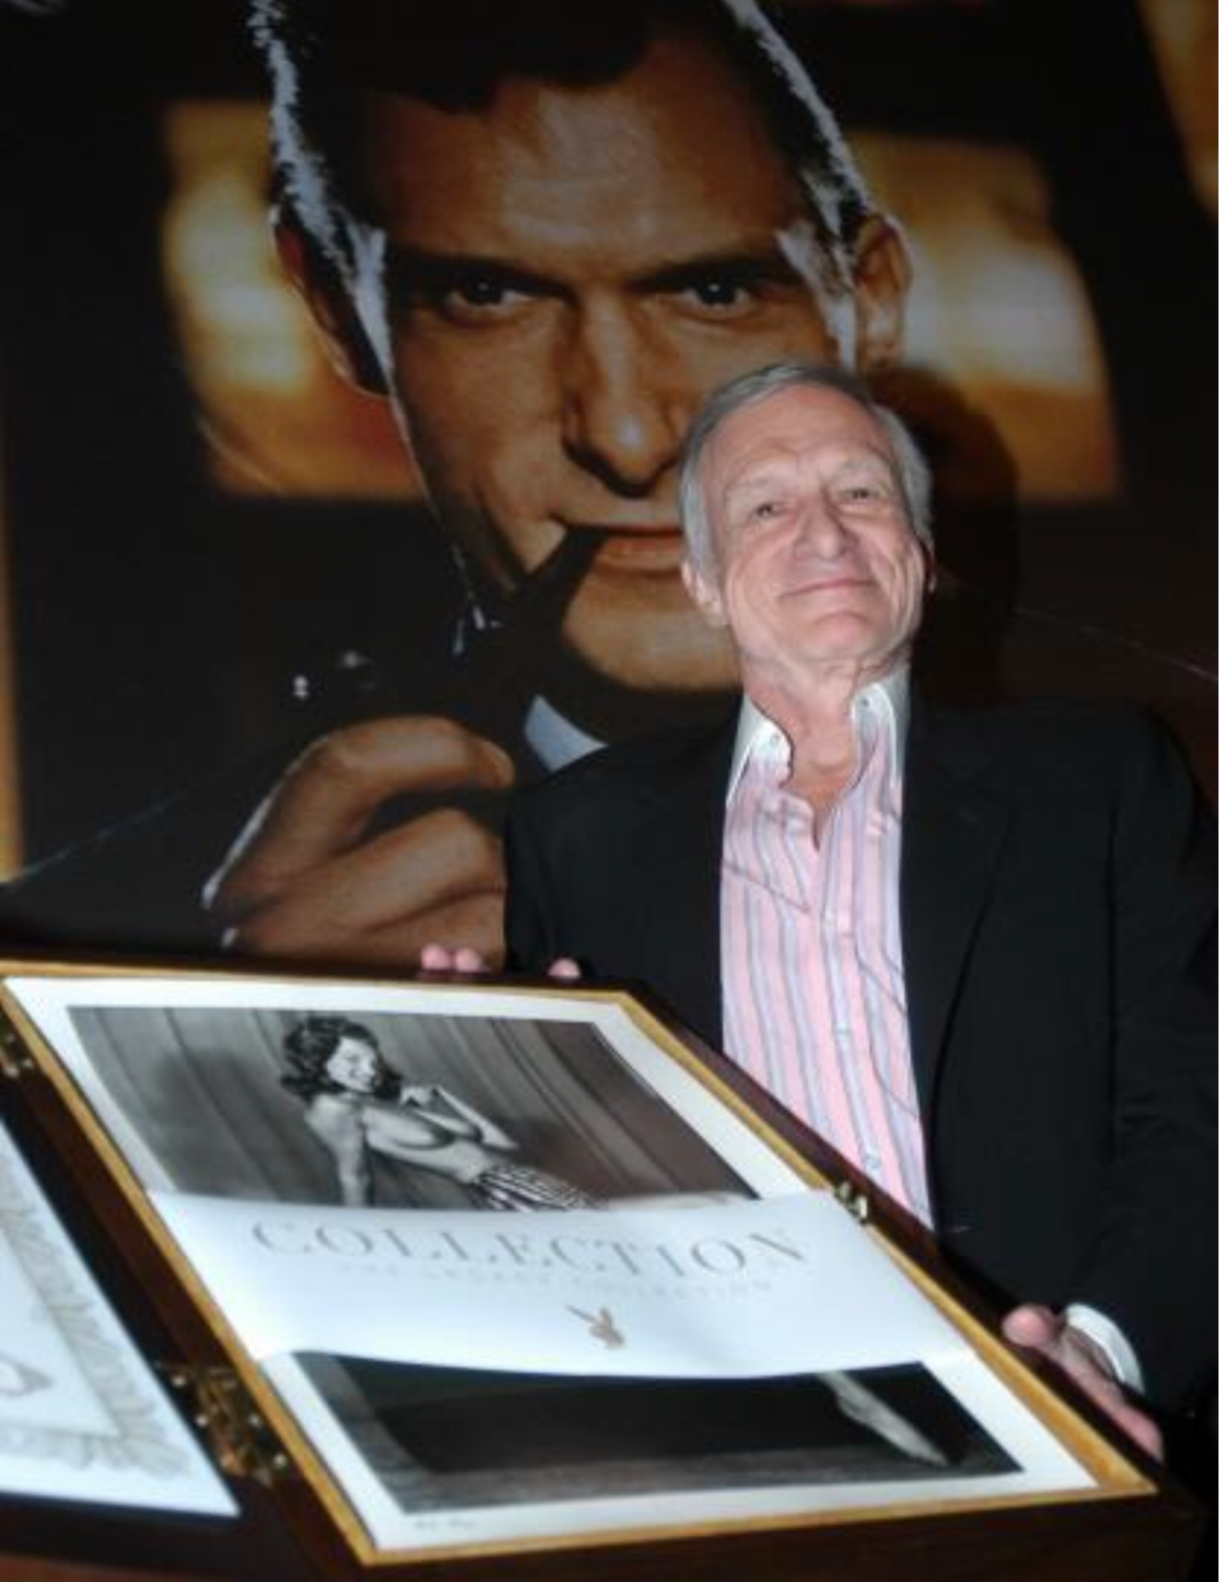 Hugh Hefner at Playboy Legacy Collection Launch